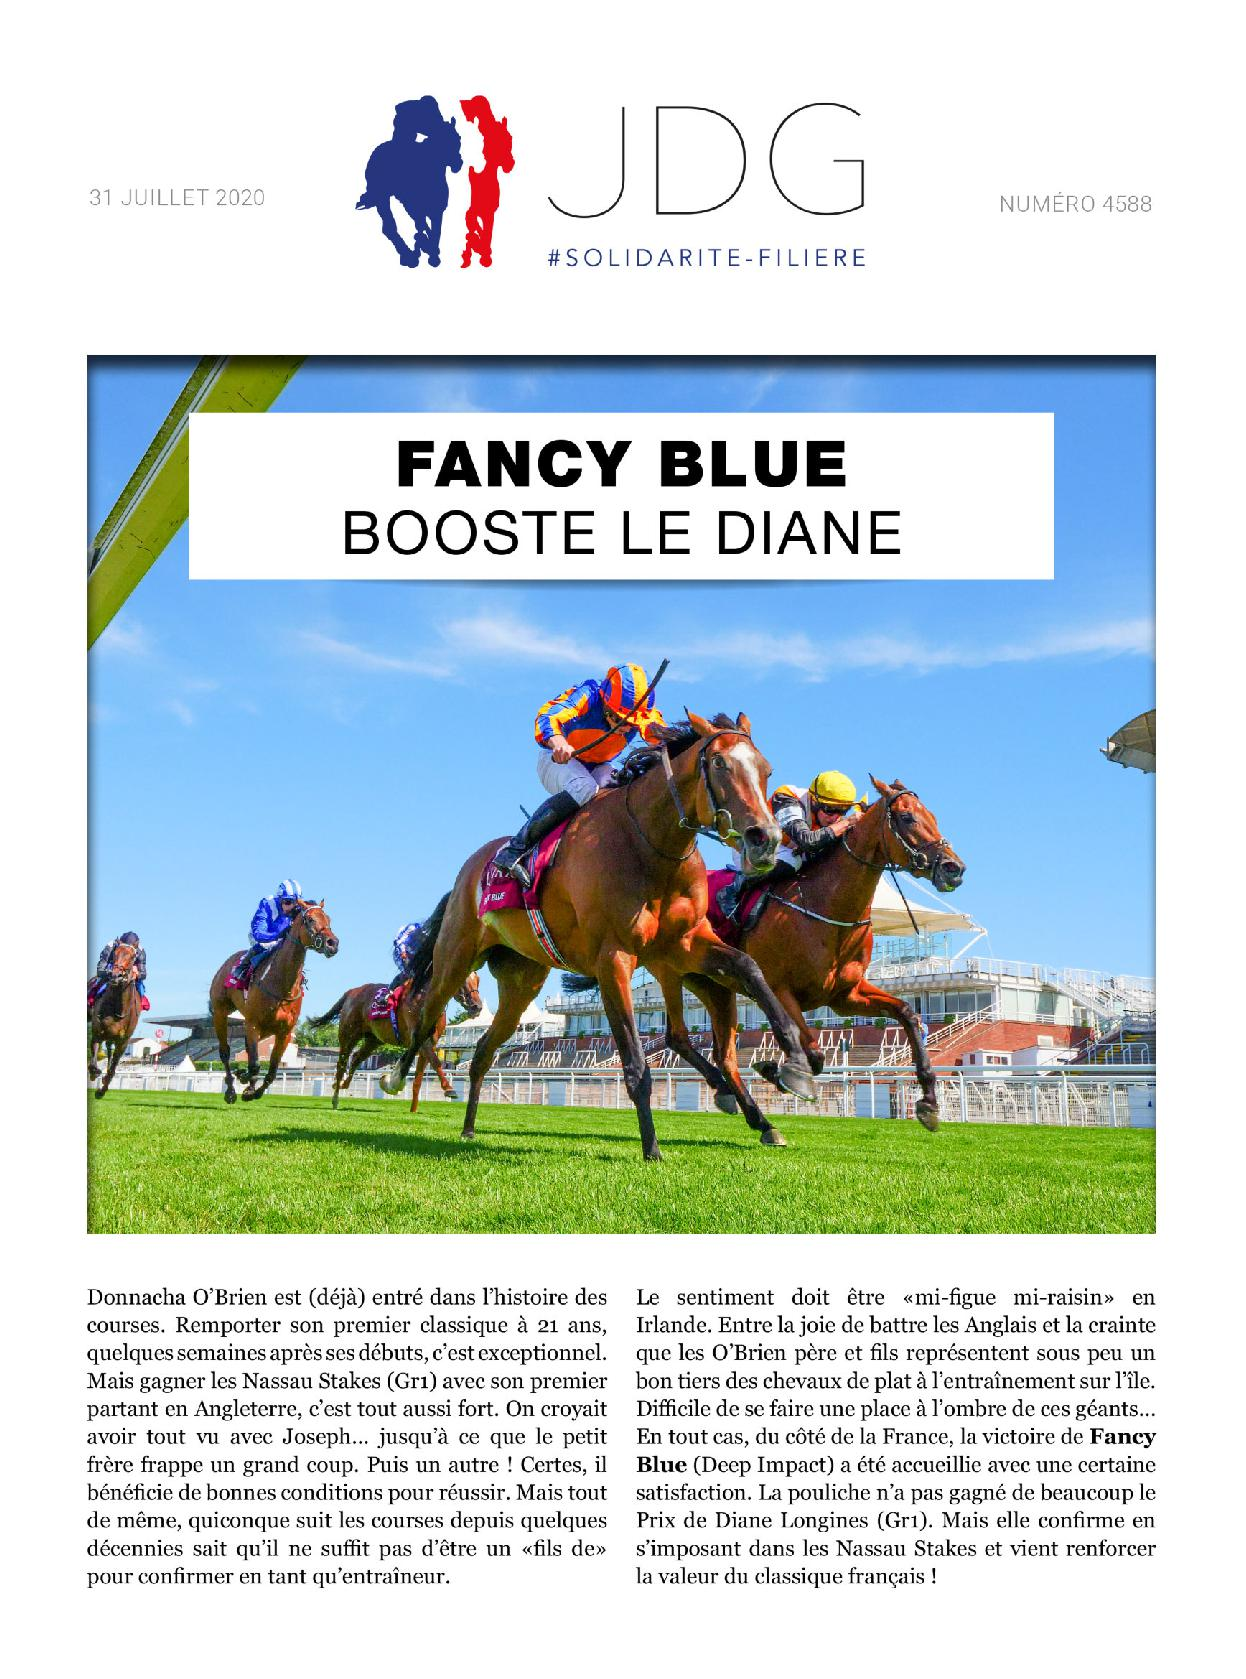 Fancy Blue booste le Diane